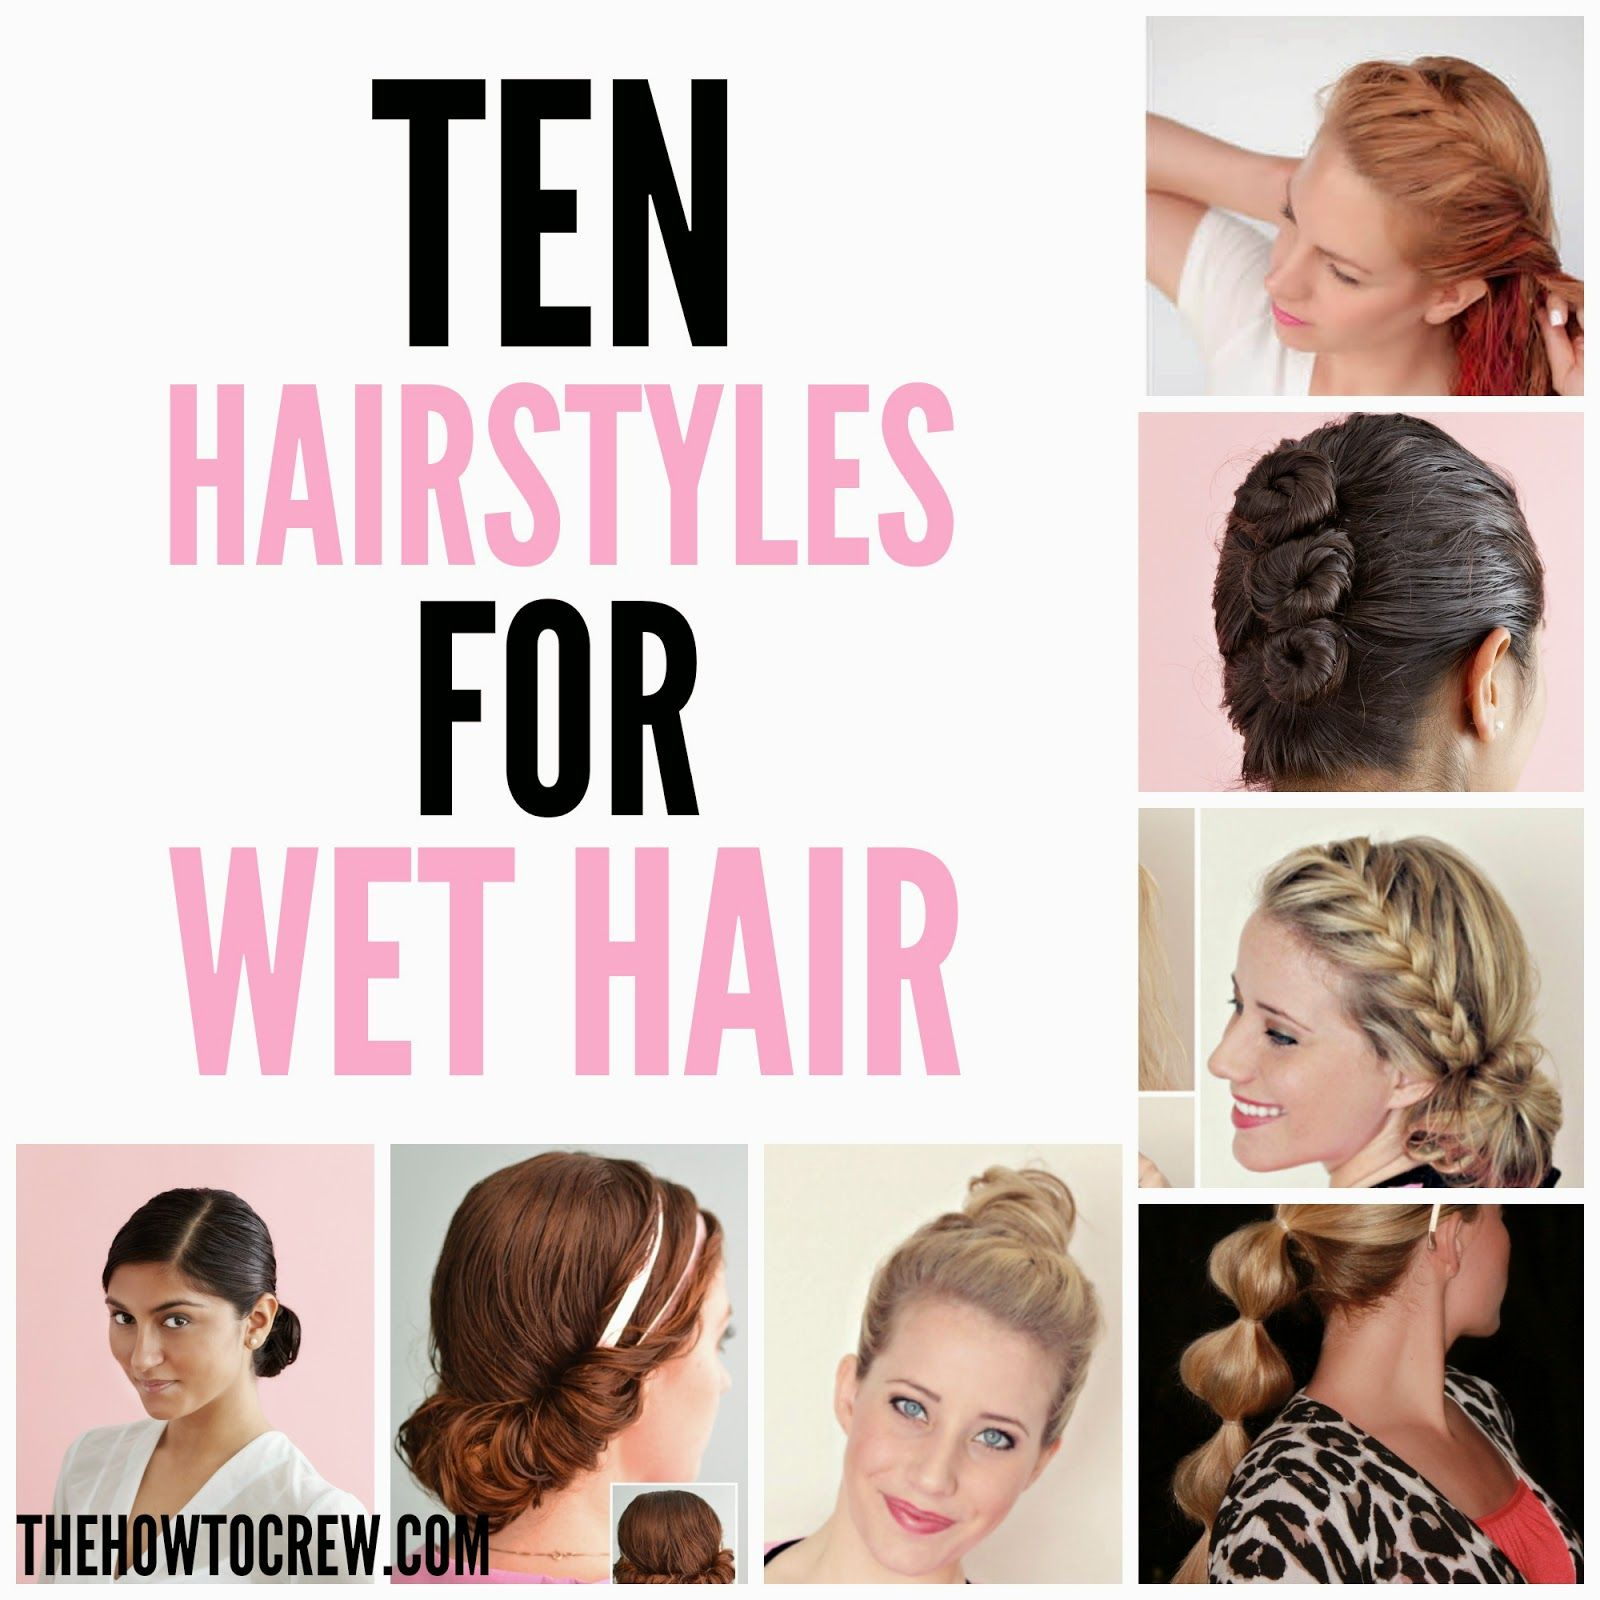 Ten hairstyles for wet hair on thehowtocrew hair ideas